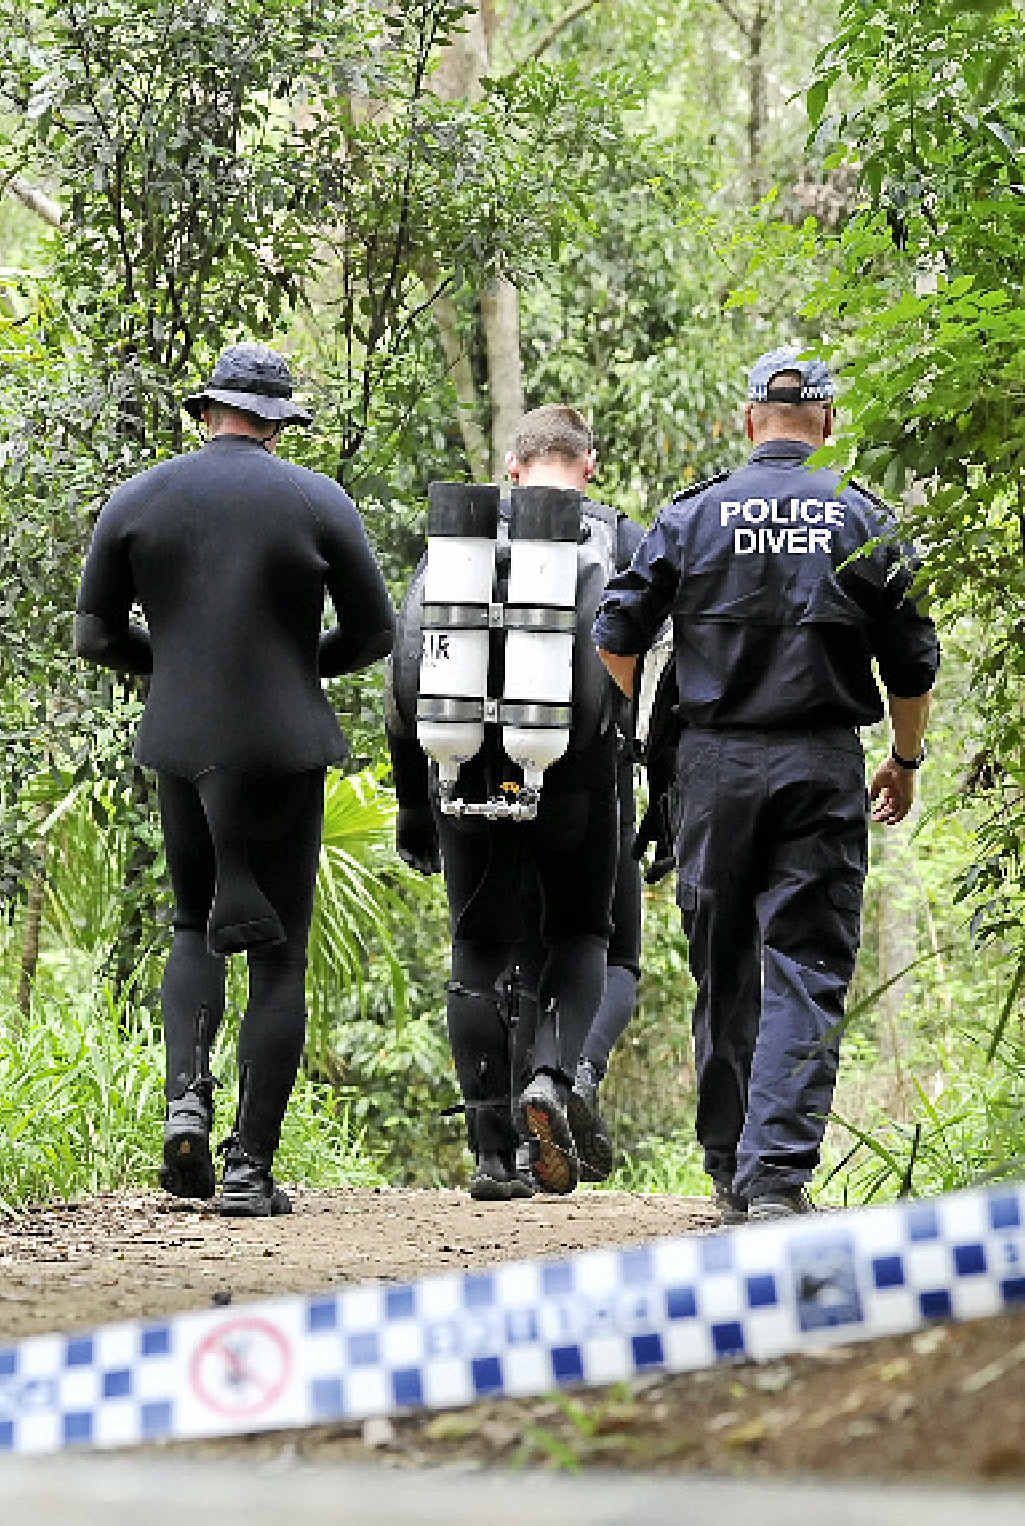 FATAL ATTRACTION: Police at Hanging Rock Falls where a man went missing after he reportedly made contact with the cliff face and vanished below the surface of the water.